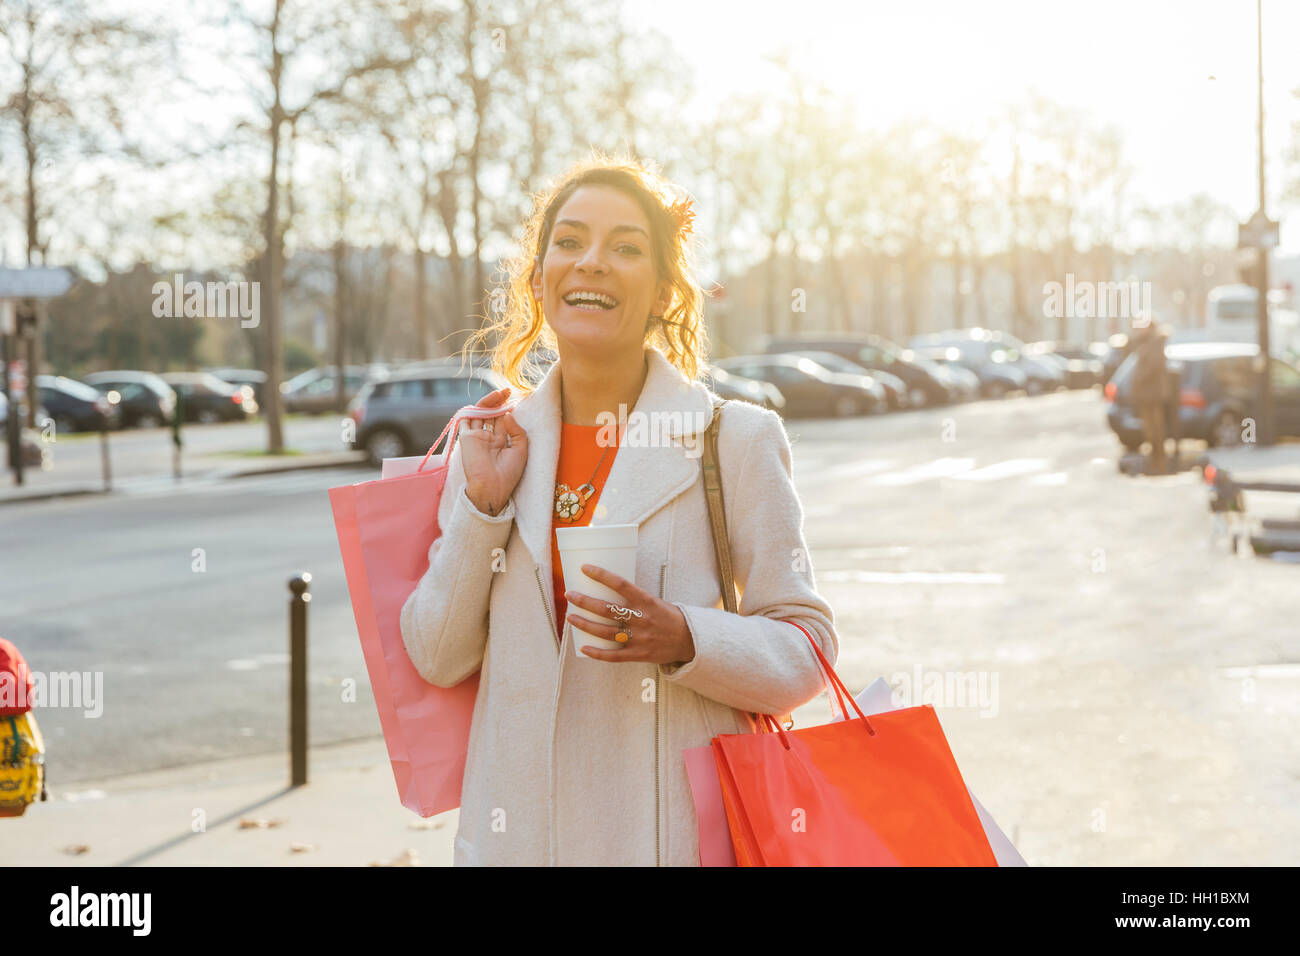 Paris, Attractive woman walking in the street - Stock Image